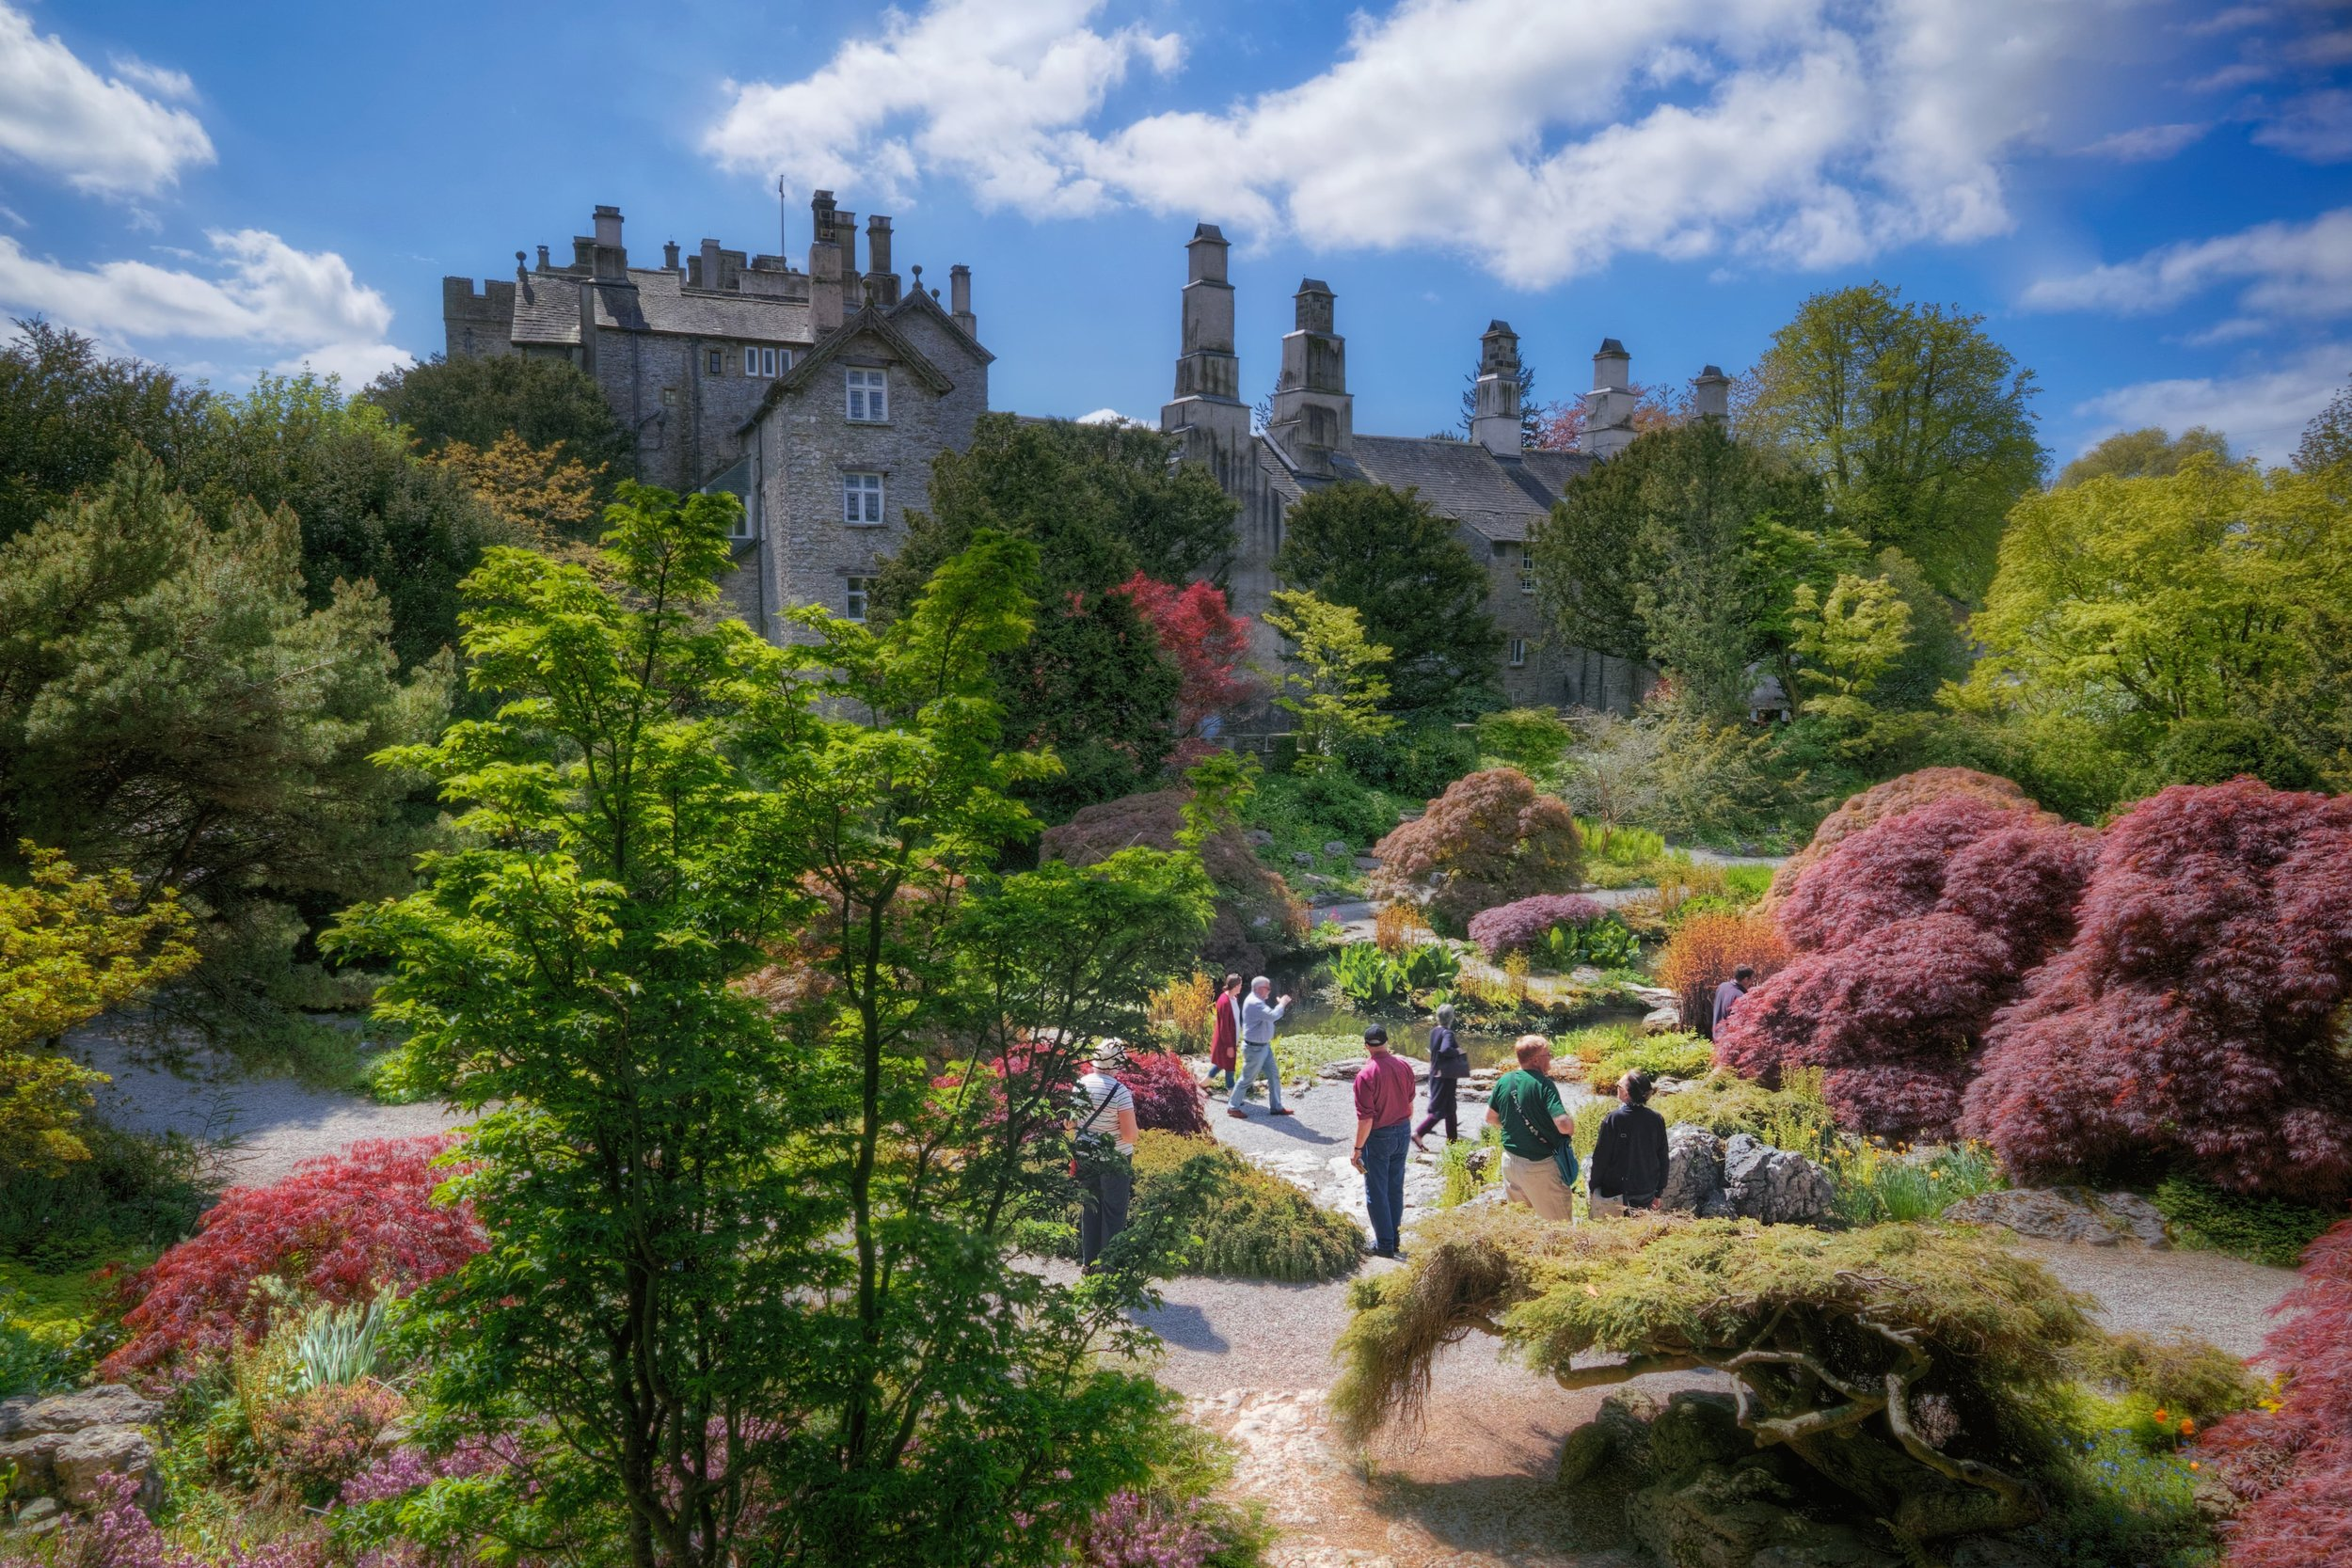 Have you ever been to Sizergh Castle and Garden? You should go, especially in the summer! Read the rest of this blog post here  https://www.iancylkowski.com/blog/2019/6/1/english-country-garden